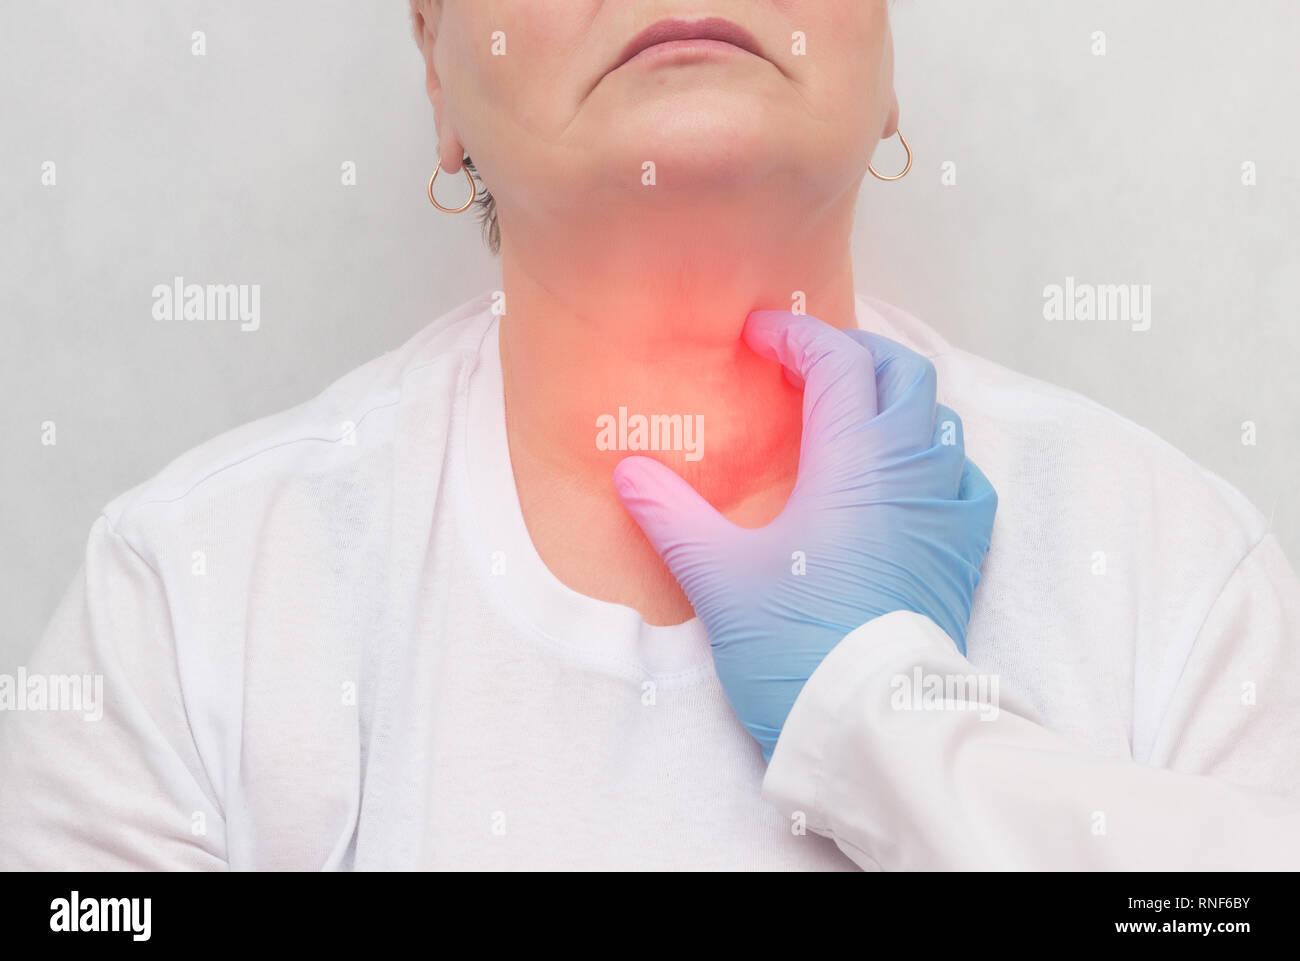 Thyroid Cancer High Resolution Stock Photography And Images Alamy